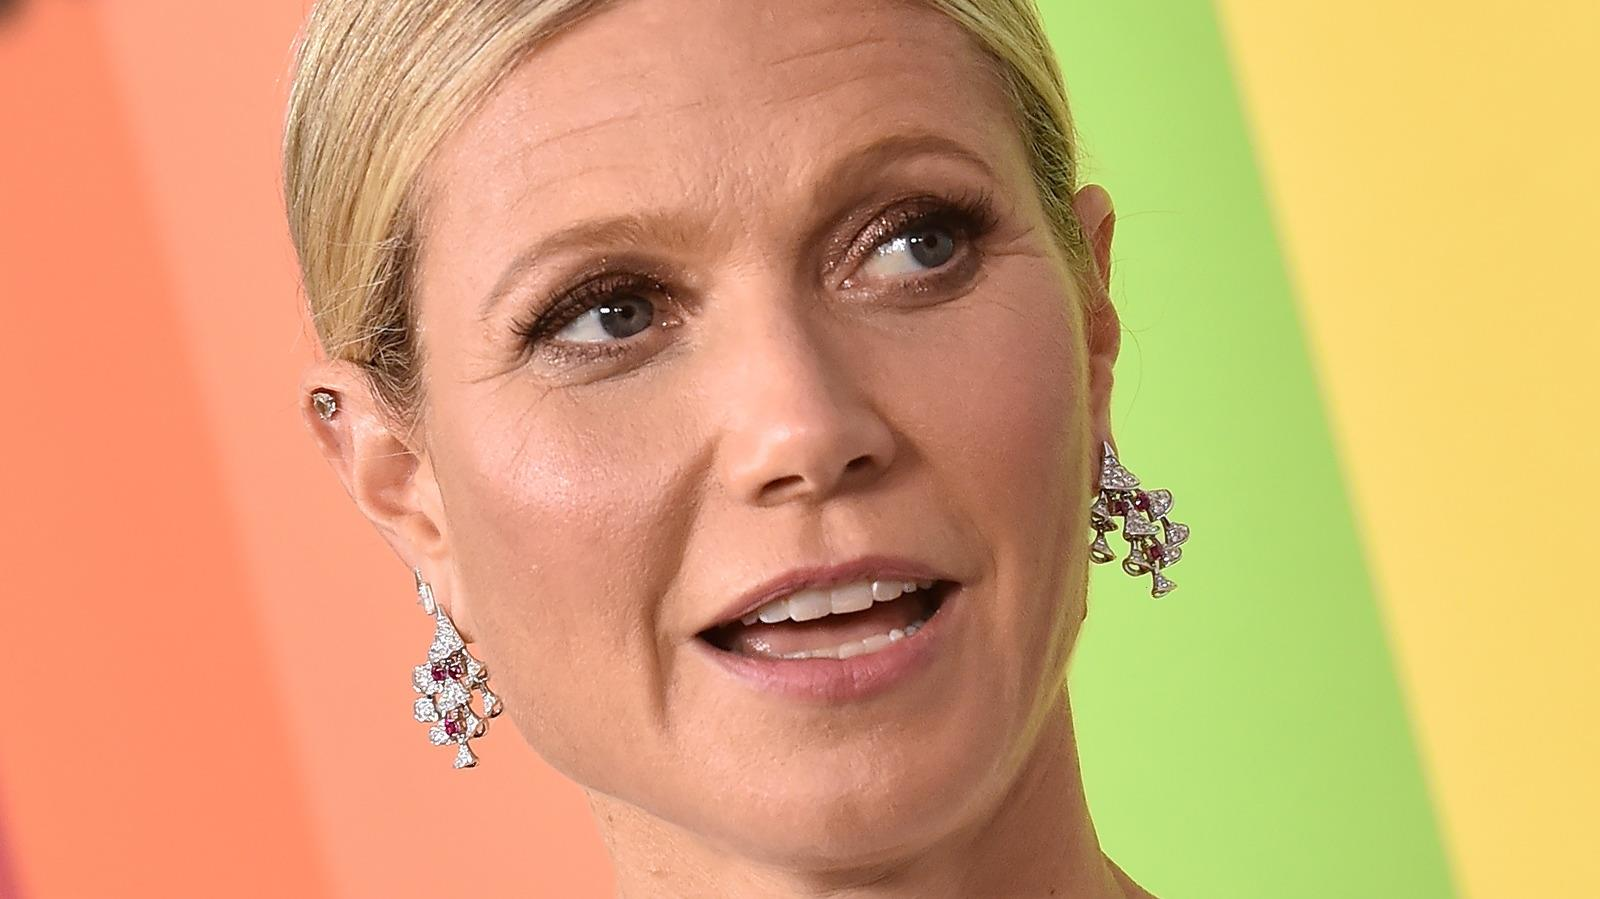 Gwyneth Paltrow's Visit To The DMV Is Raising Eyebrows. Here's Why